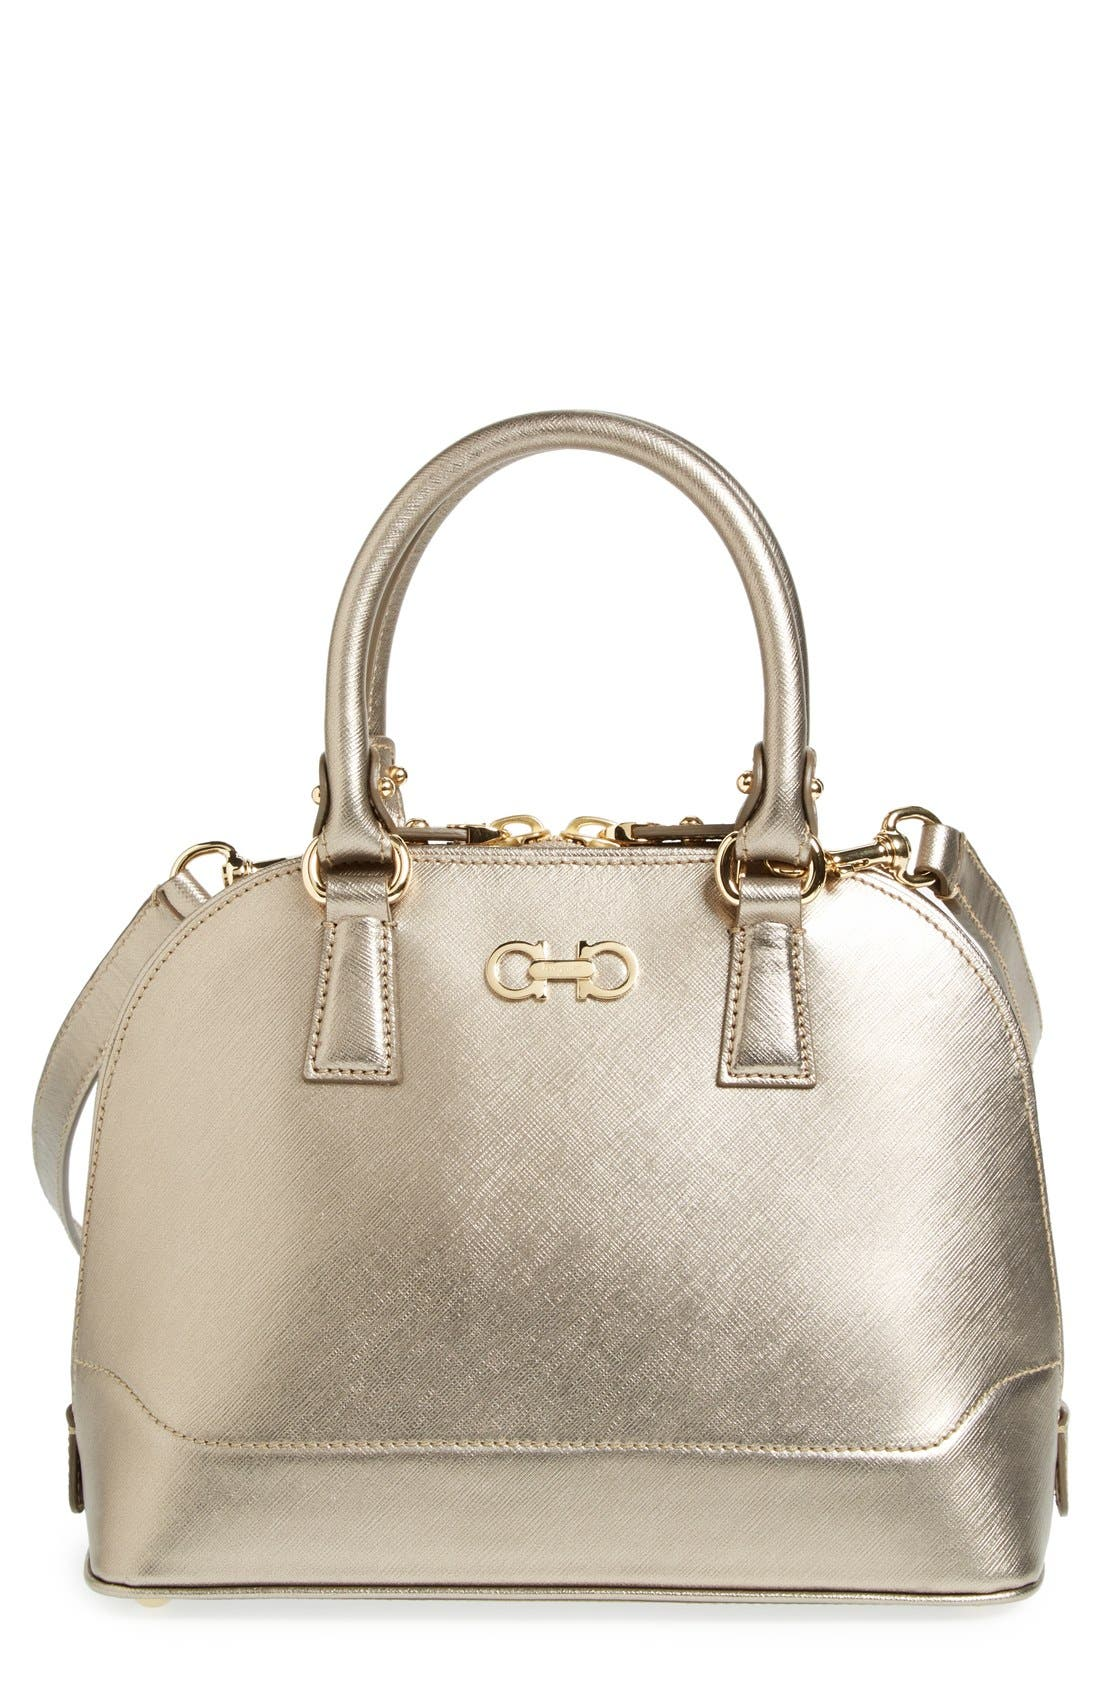 Alternate Image 1 Selected - Salvatore Ferragamo 'Mini Darina' Dome Satchel